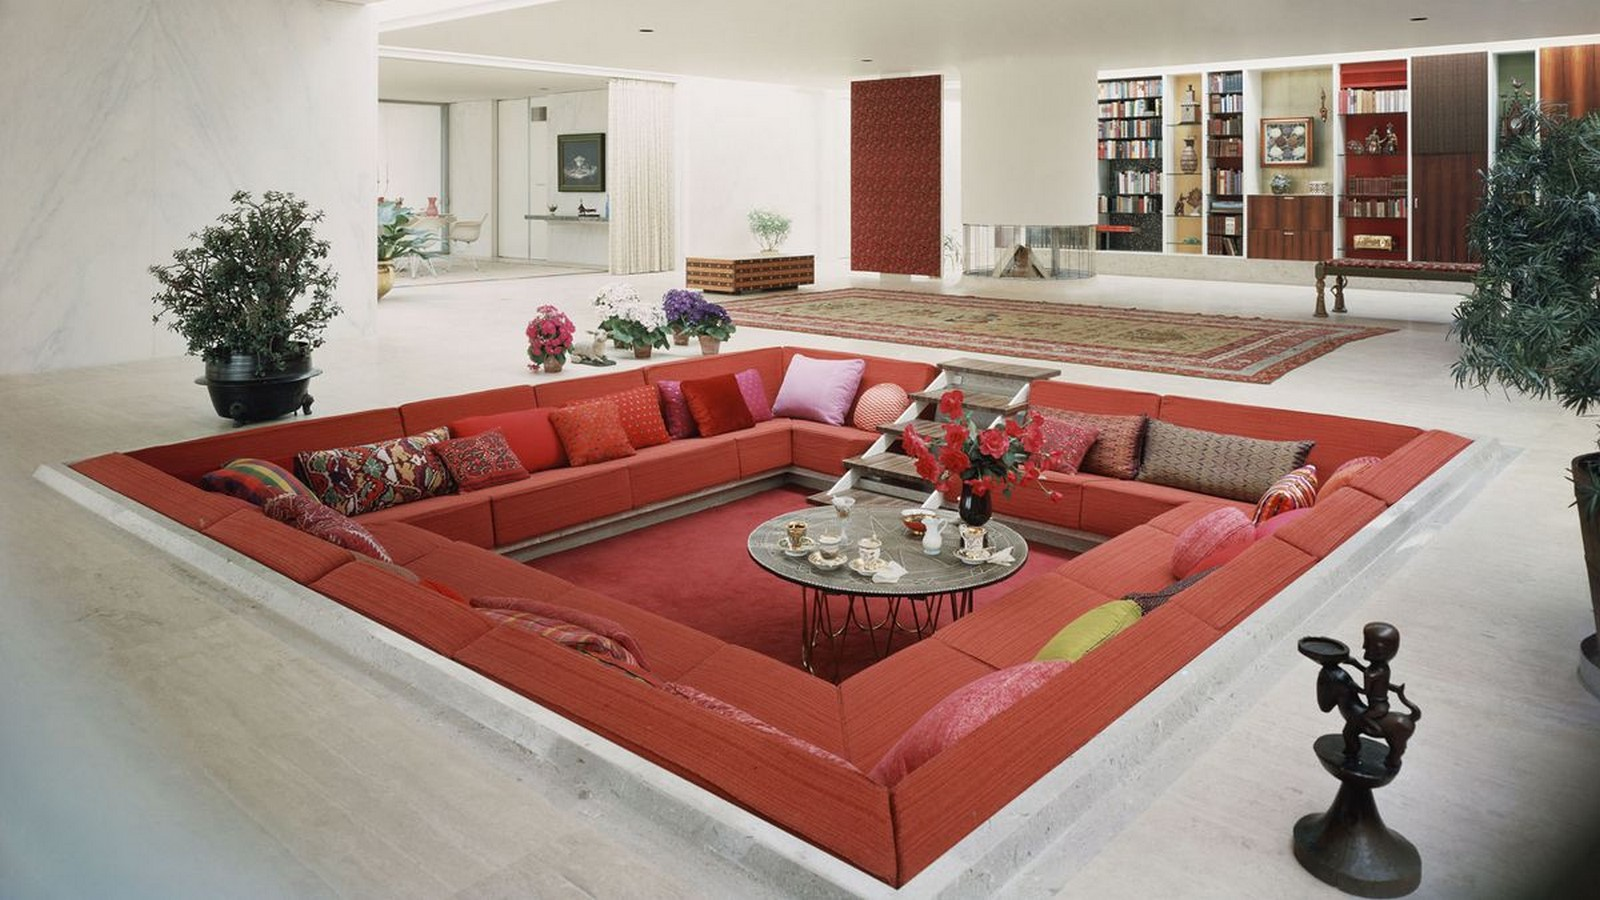 Conversation Pit: A trend worth coming back - Sheet5